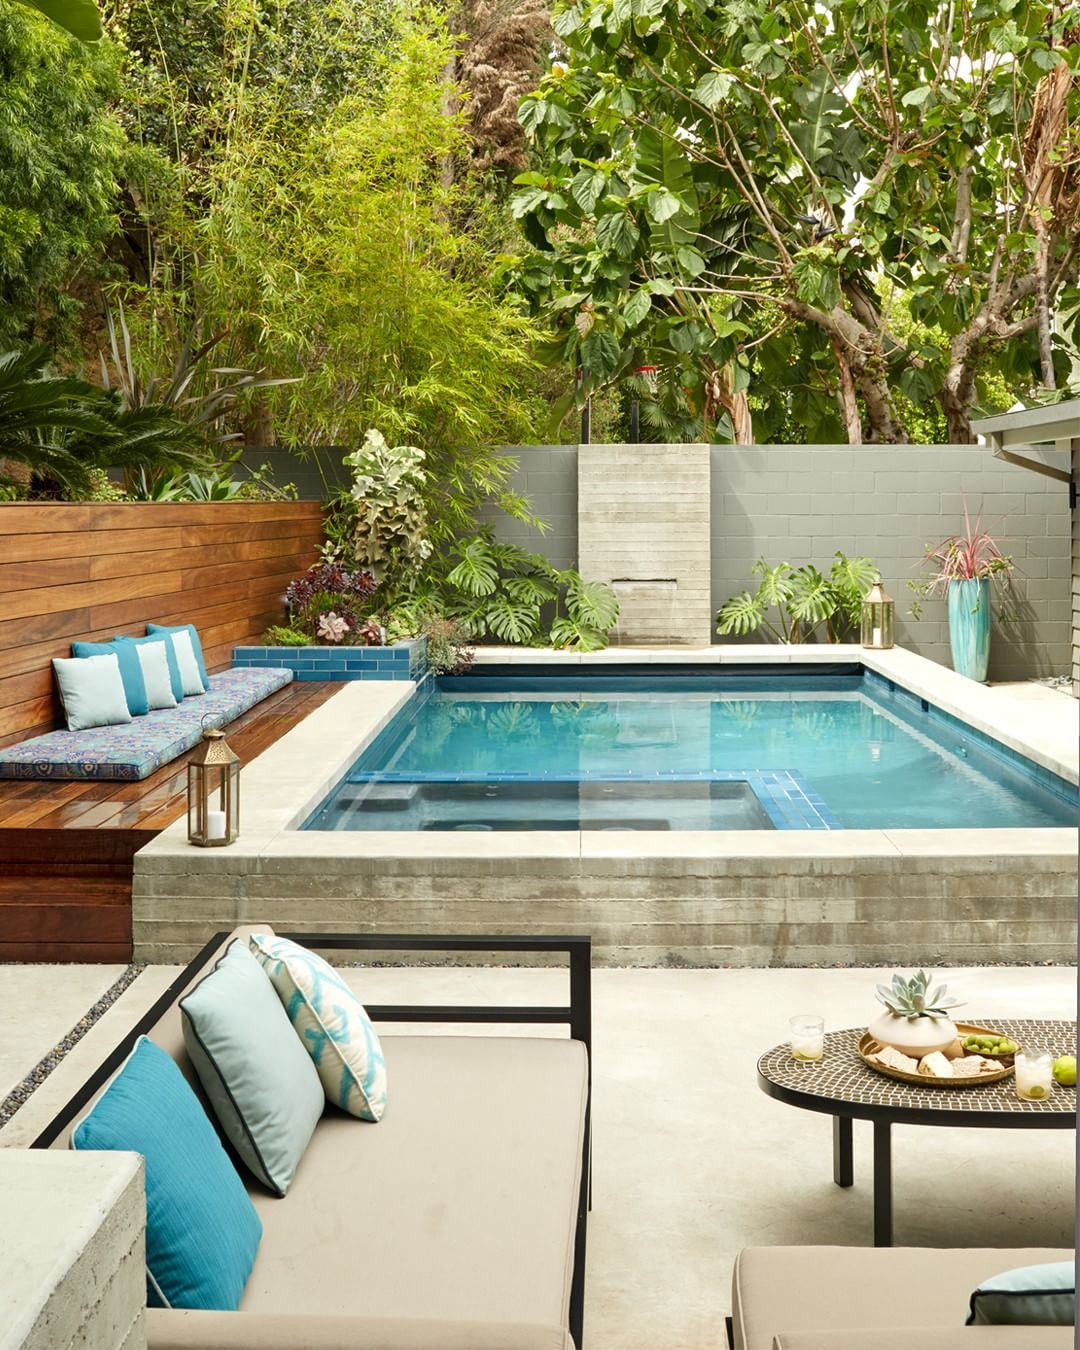 Backyard Paradise: If You Couldn't Already Tell, This Backyard Paradise Was